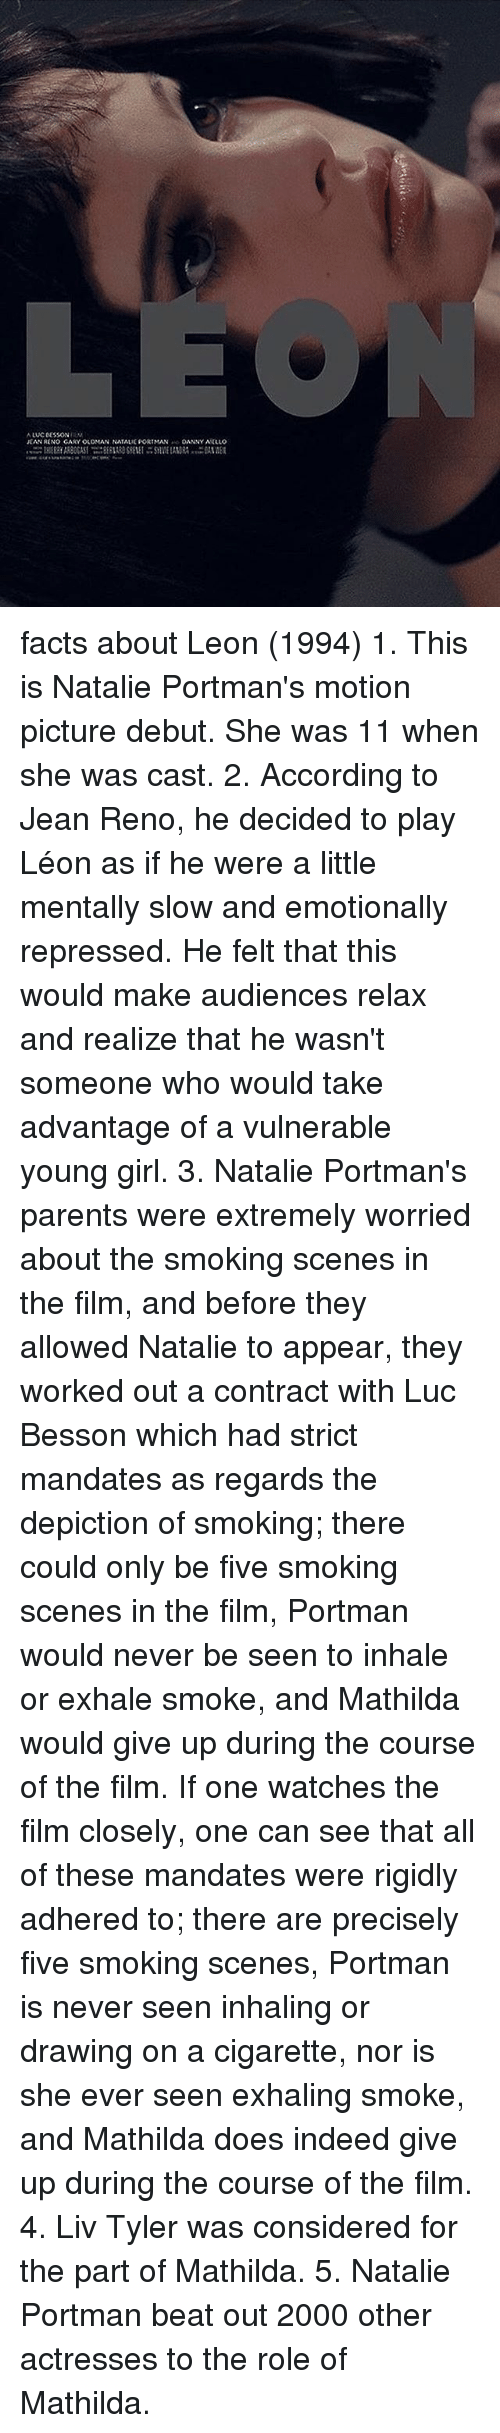 Facts, Memes, and Parents: ALUCCESSON  JEAN RENO GAKY OLOMAN NATAUL PORTMAN  DANNY ASILLO facts about Leon (1994) 1. This is Natalie Portman's motion picture debut. She was 11 when she was cast. 2. According to Jean Reno, he decided to play Léon as if he were a little mentally slow and emotionally repressed. He felt that this would make audiences relax and realize that he wasn't someone who would take advantage of a vulnerable young girl. 3. Natalie Portman's parents were extremely worried about the smoking scenes in the film, and before they allowed Natalie to appear, they worked out a contract with Luc Besson which had strict mandates as regards the depiction of smoking; there could only be five smoking scenes in the film, Portman would never be seen to inhale or exhale smoke, and Mathilda would give up during the course of the film. If one watches the film closely, one can see that all of these mandates were rigidly adhered to; there are precisely five smoking scenes, Portman is never seen inhaling or drawing on a cigarette, nor is she ever seen exhaling smoke, and Mathilda does indeed give up during the course of the film. 4. Liv Tyler was considered for the part of Mathilda. 5. Natalie Portman beat out 2000 other actresses to the role of Mathilda.